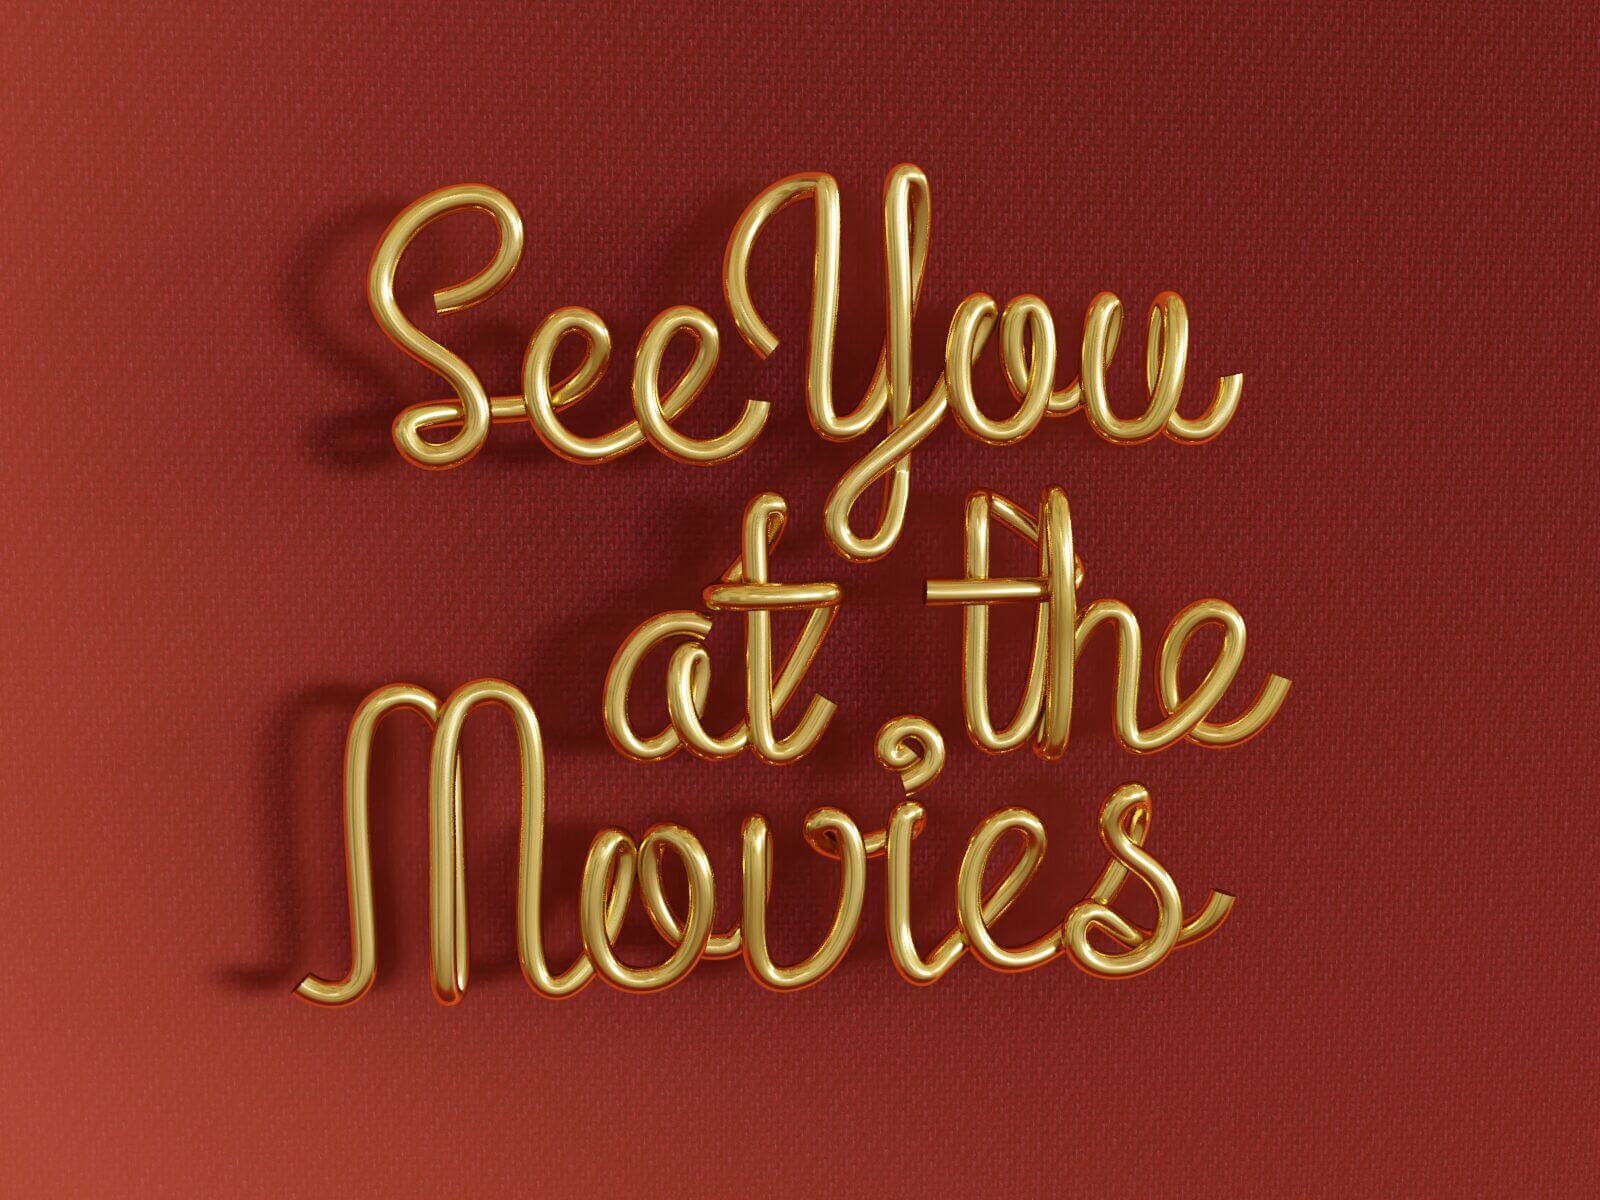 See You at the Movies (3D pipe text, v1)